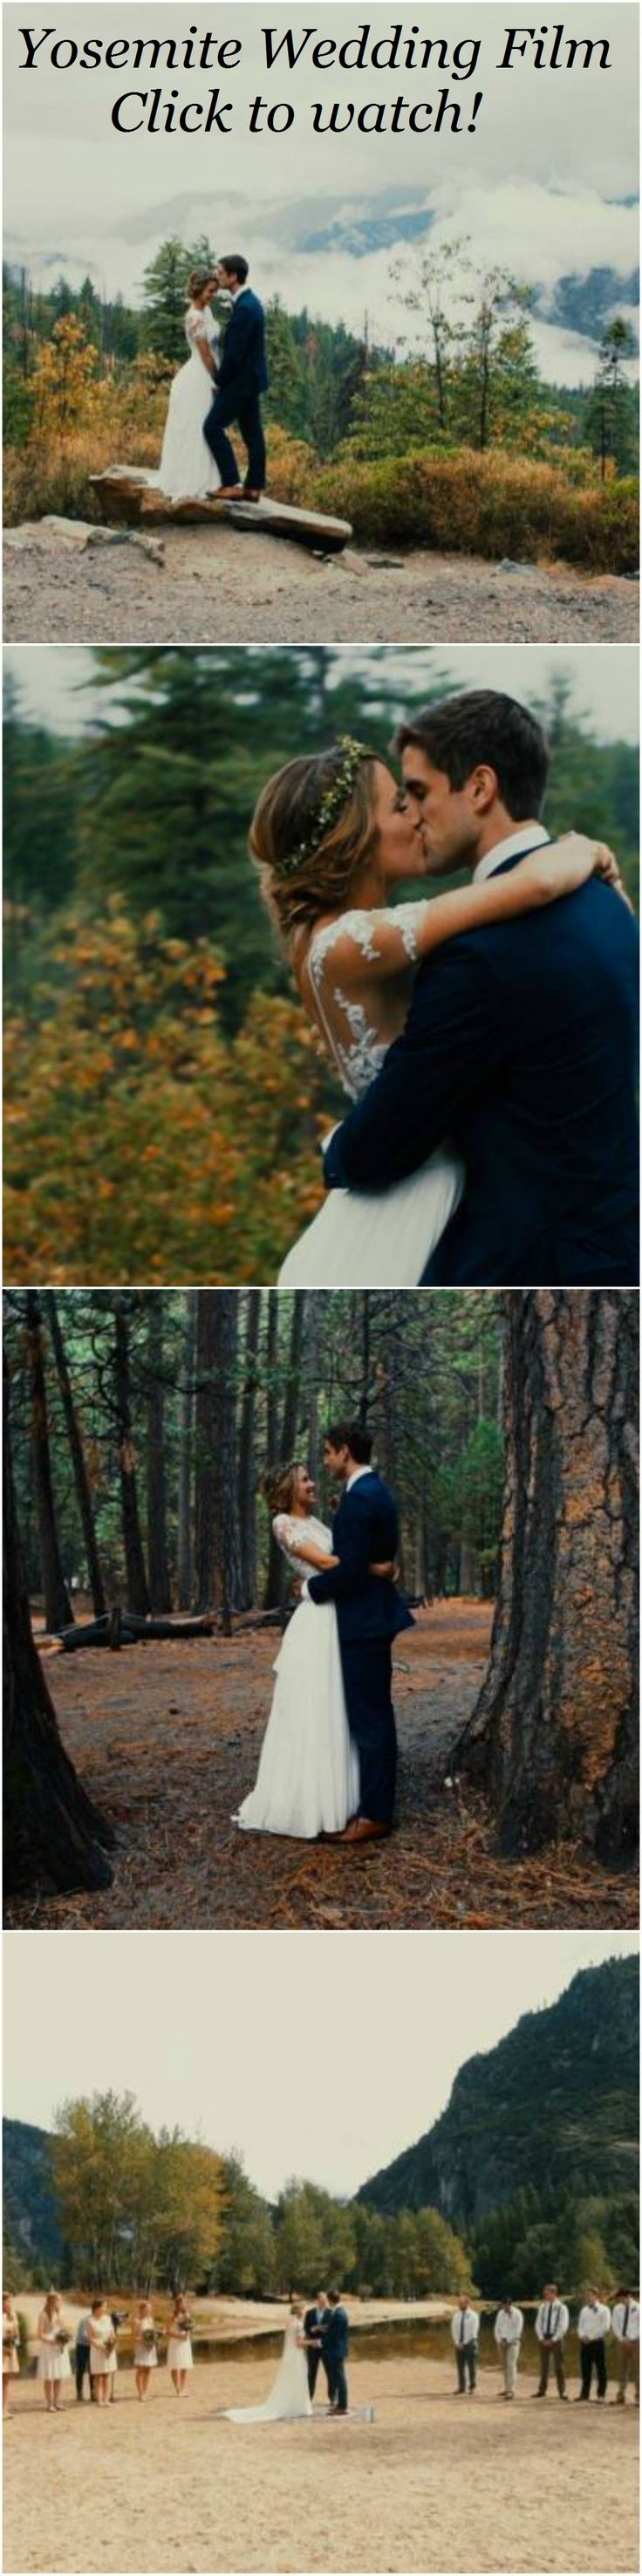 Yosemite Wedding Film. Christian Ceremony in the California mountains. See more films at filmstrong.com